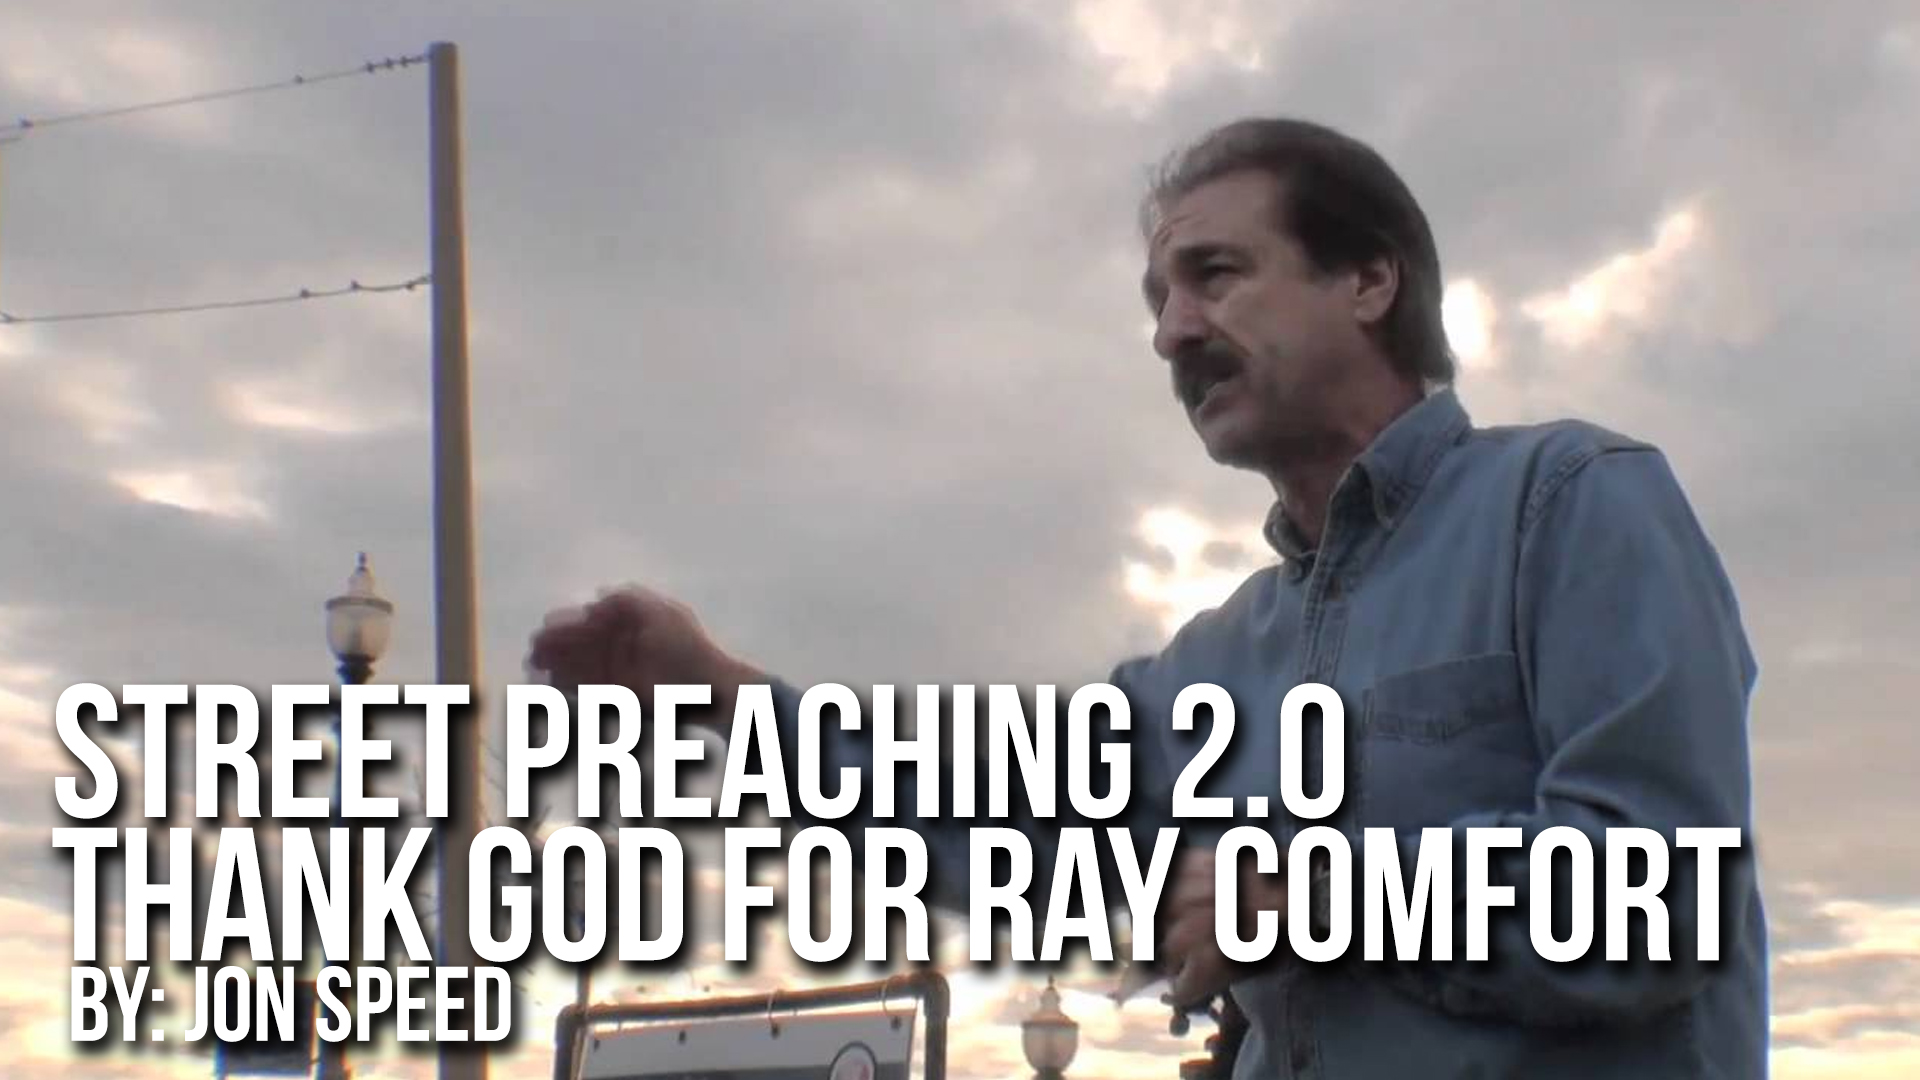 Street Preaching 2.0: Thank God for Ray Comfort